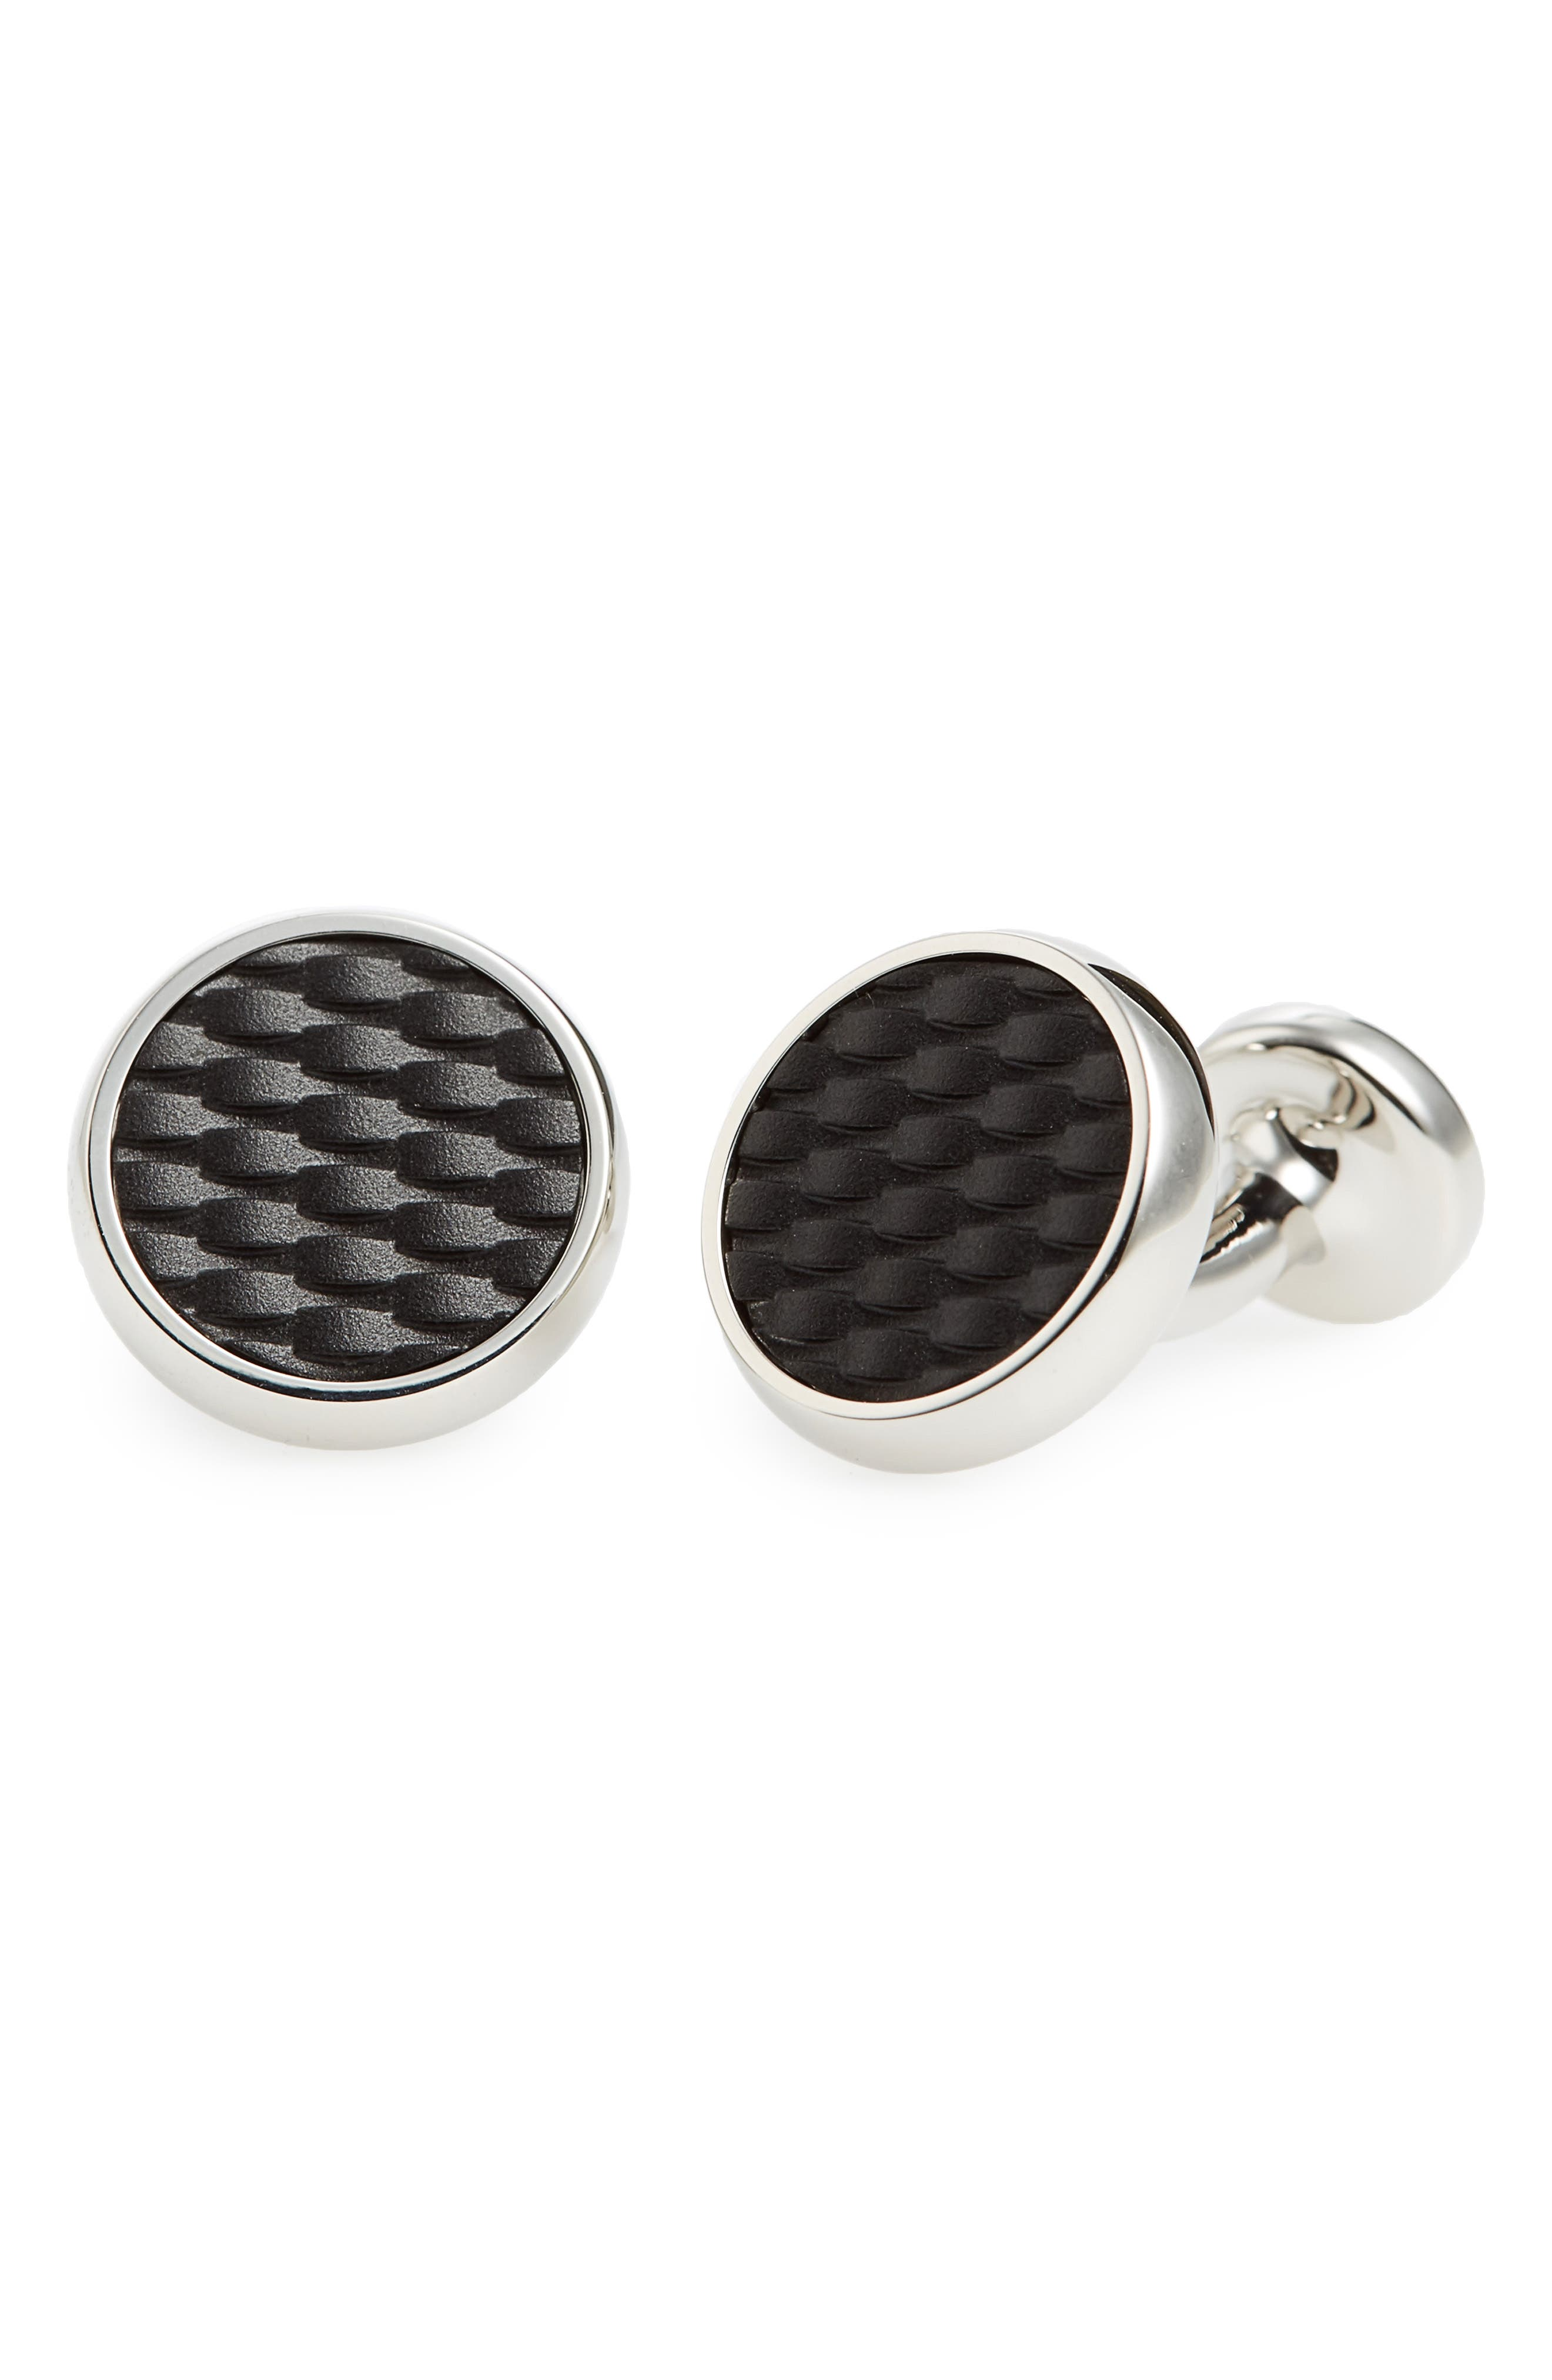 Achi Cuff Links,                             Main thumbnail 1, color,